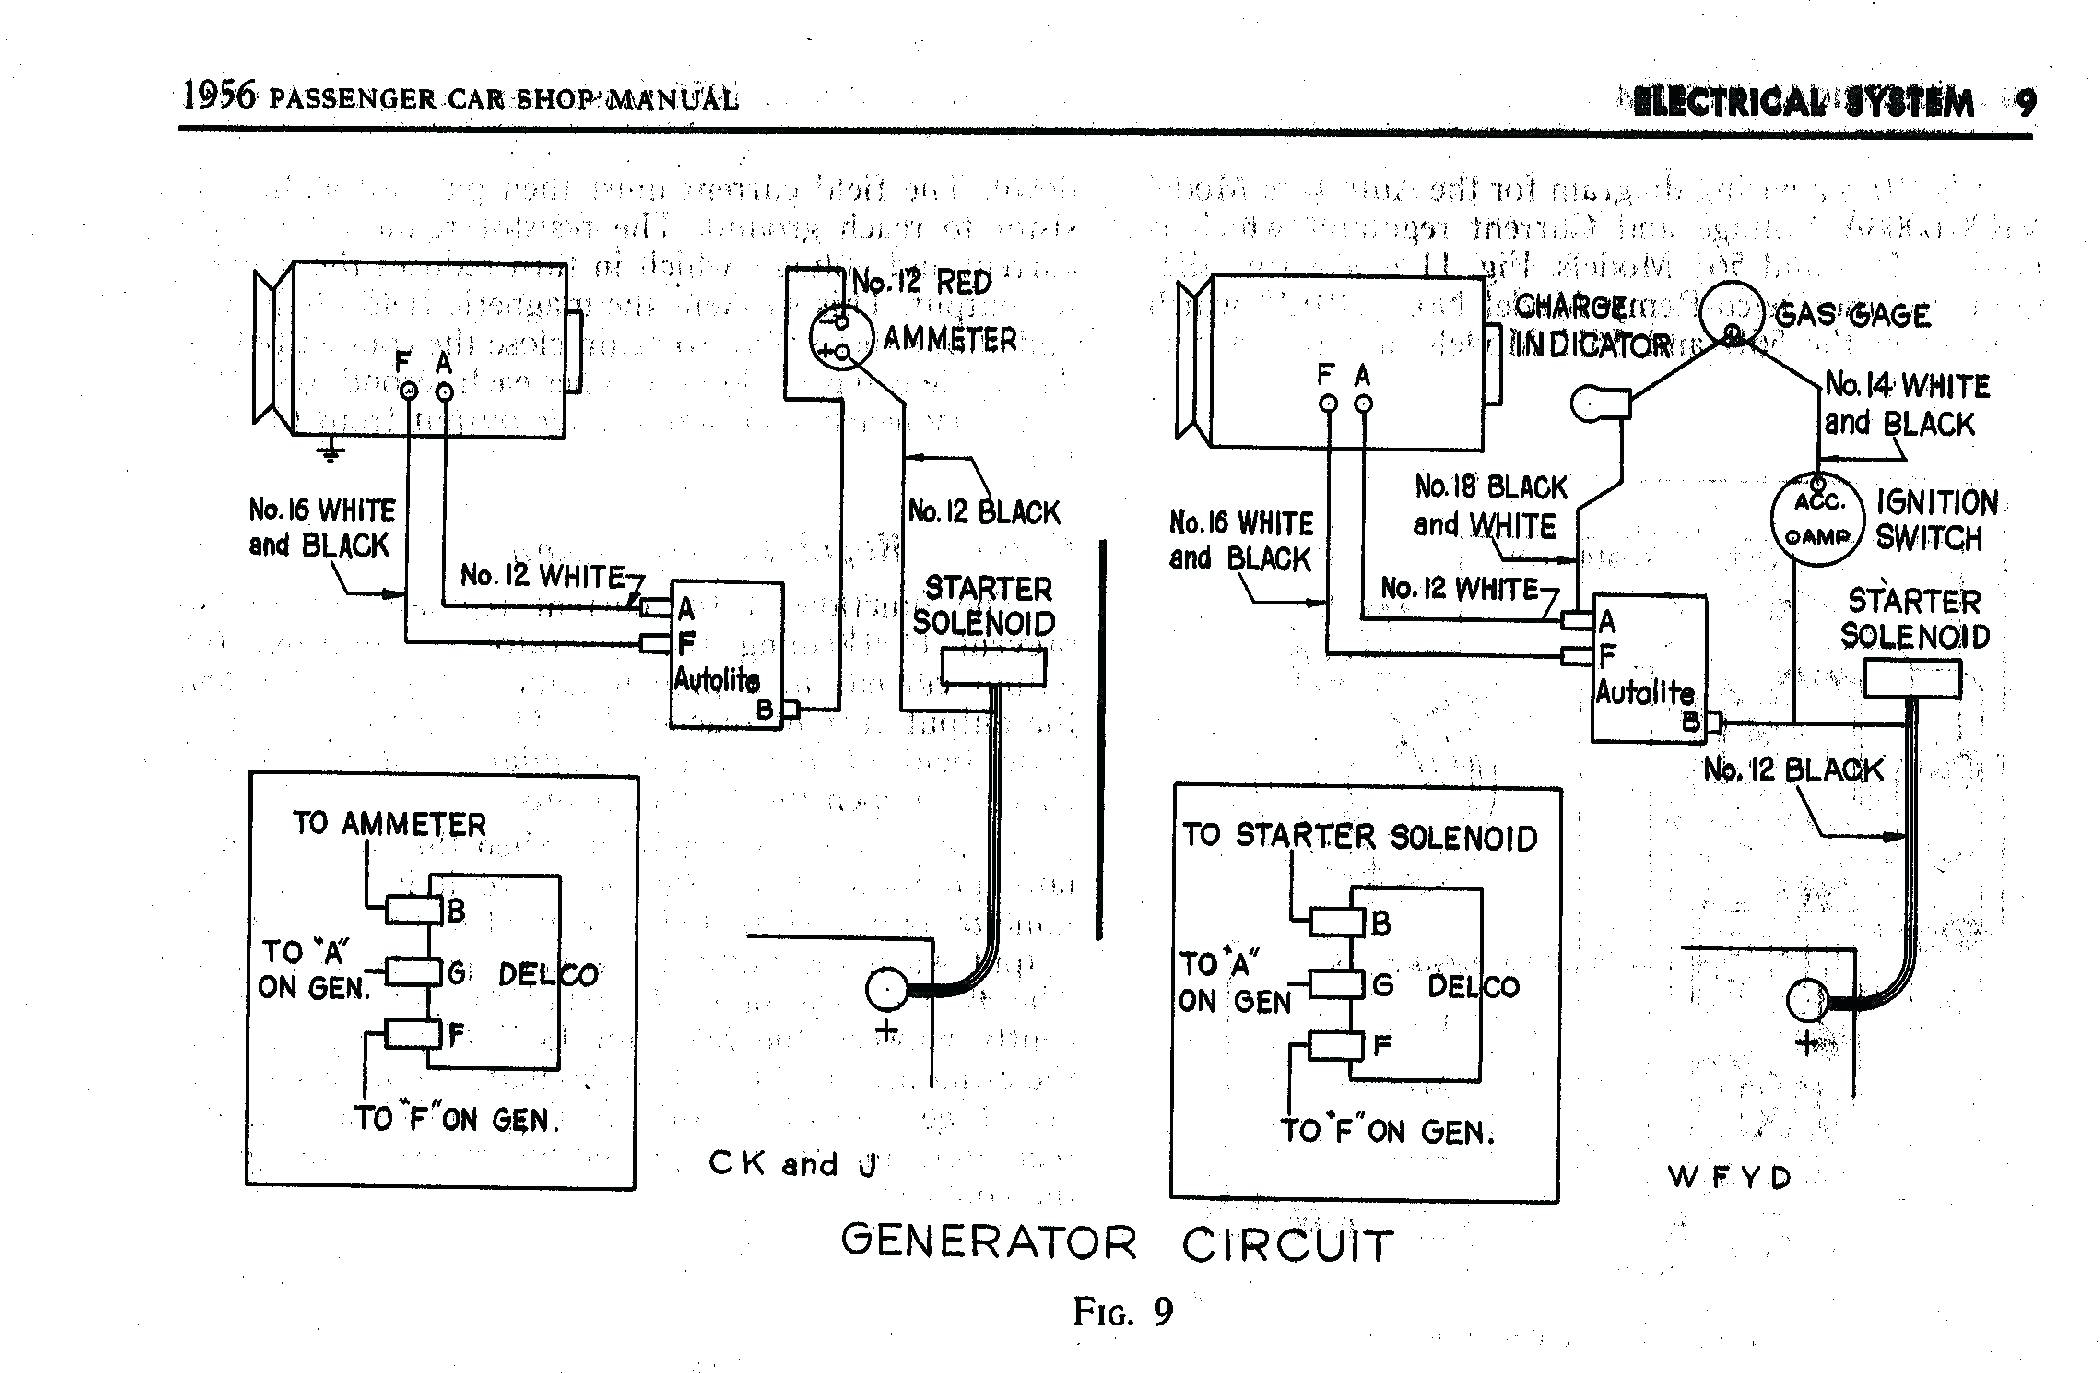 asco automatic transfer switch series 300 wiring diagram Download-Asco 7000 Series Automatic Transfer Switch Wiring Diagram Luxury Fantastic Auto Transfer Switch Wiring Diagram Inspiration 2-d